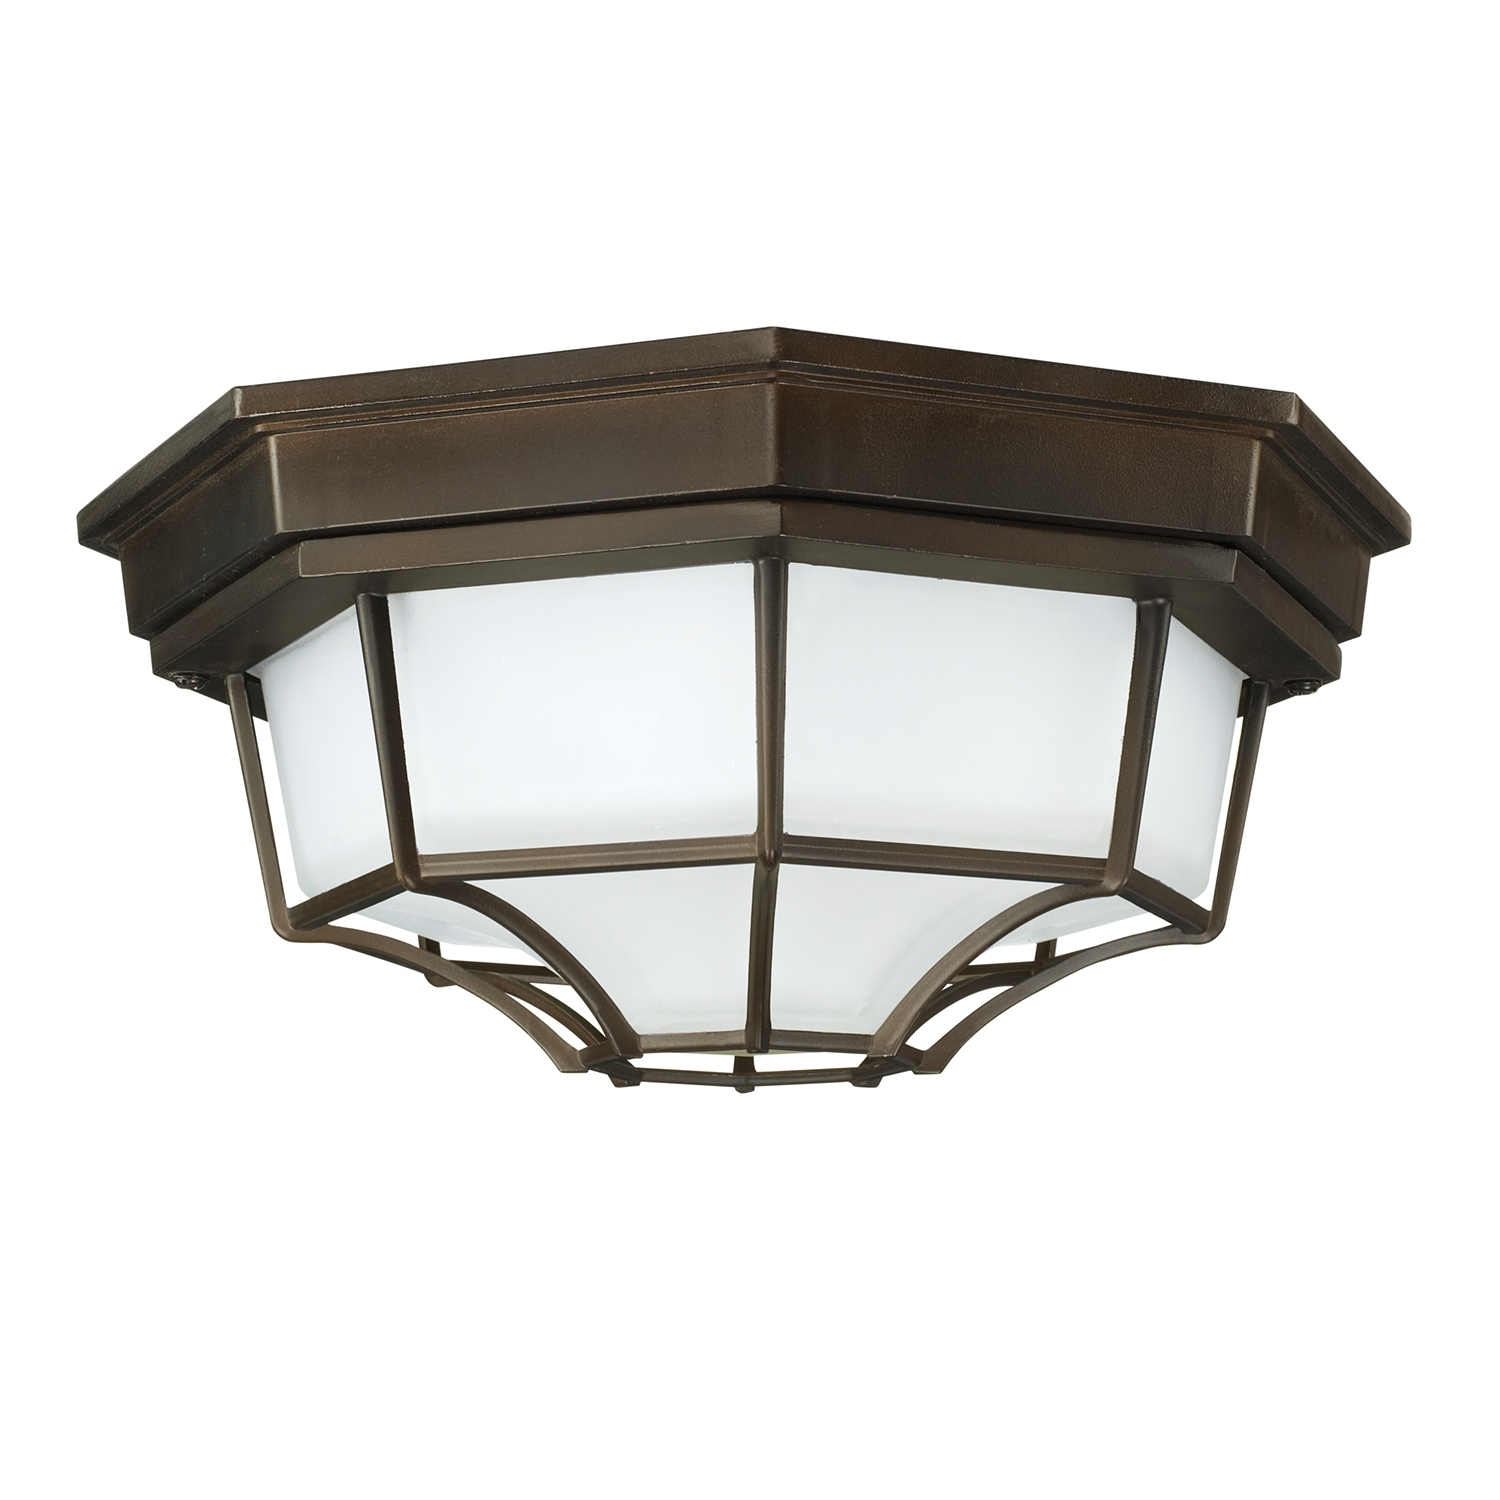 Trendy Outdoor Ceiling Lights For Porch For Outdoor Ceiling Lighting (View 18 of 20)